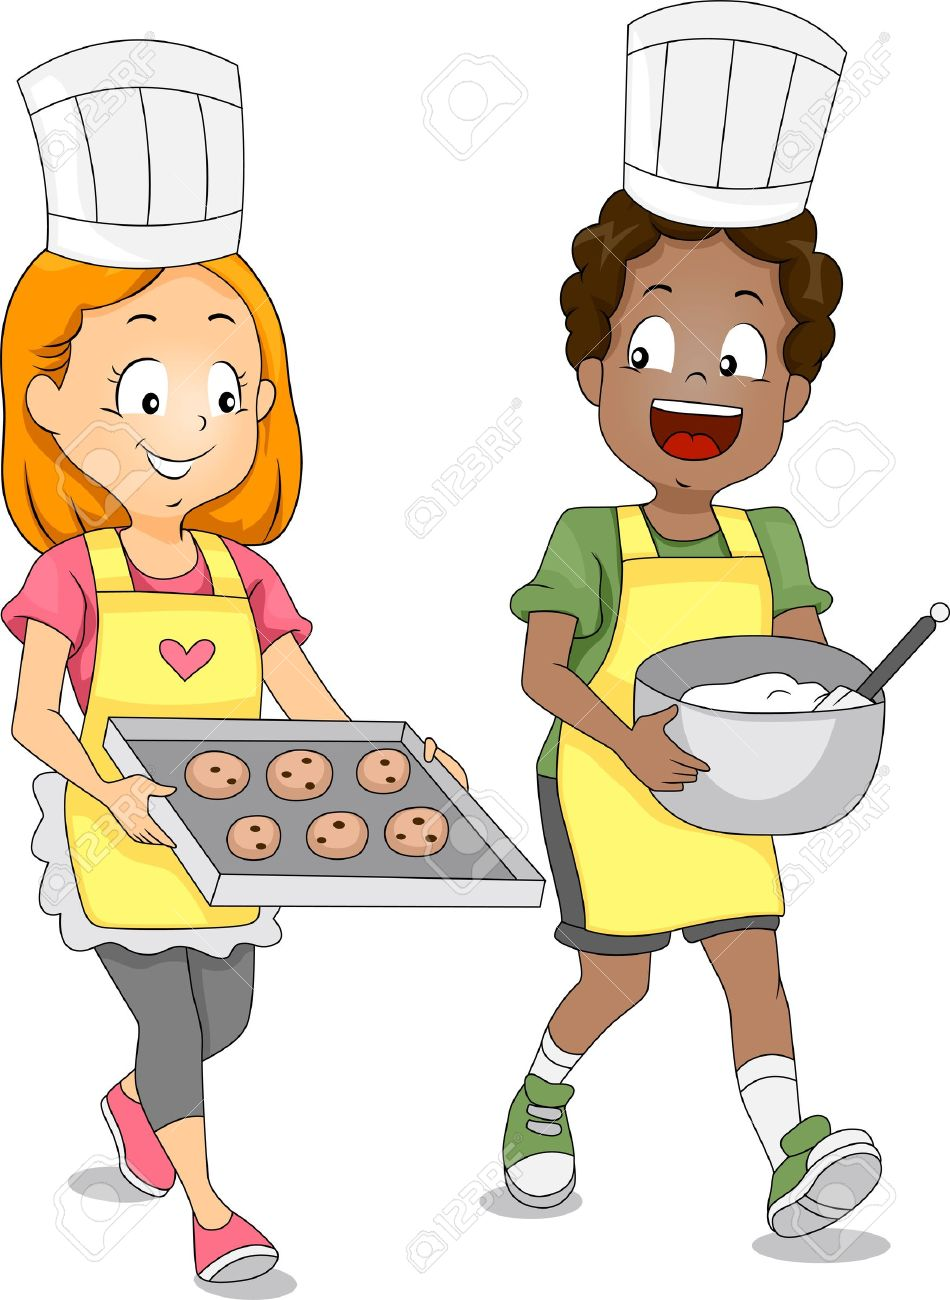 Cooking clipartfest of kids. Children chef clipart